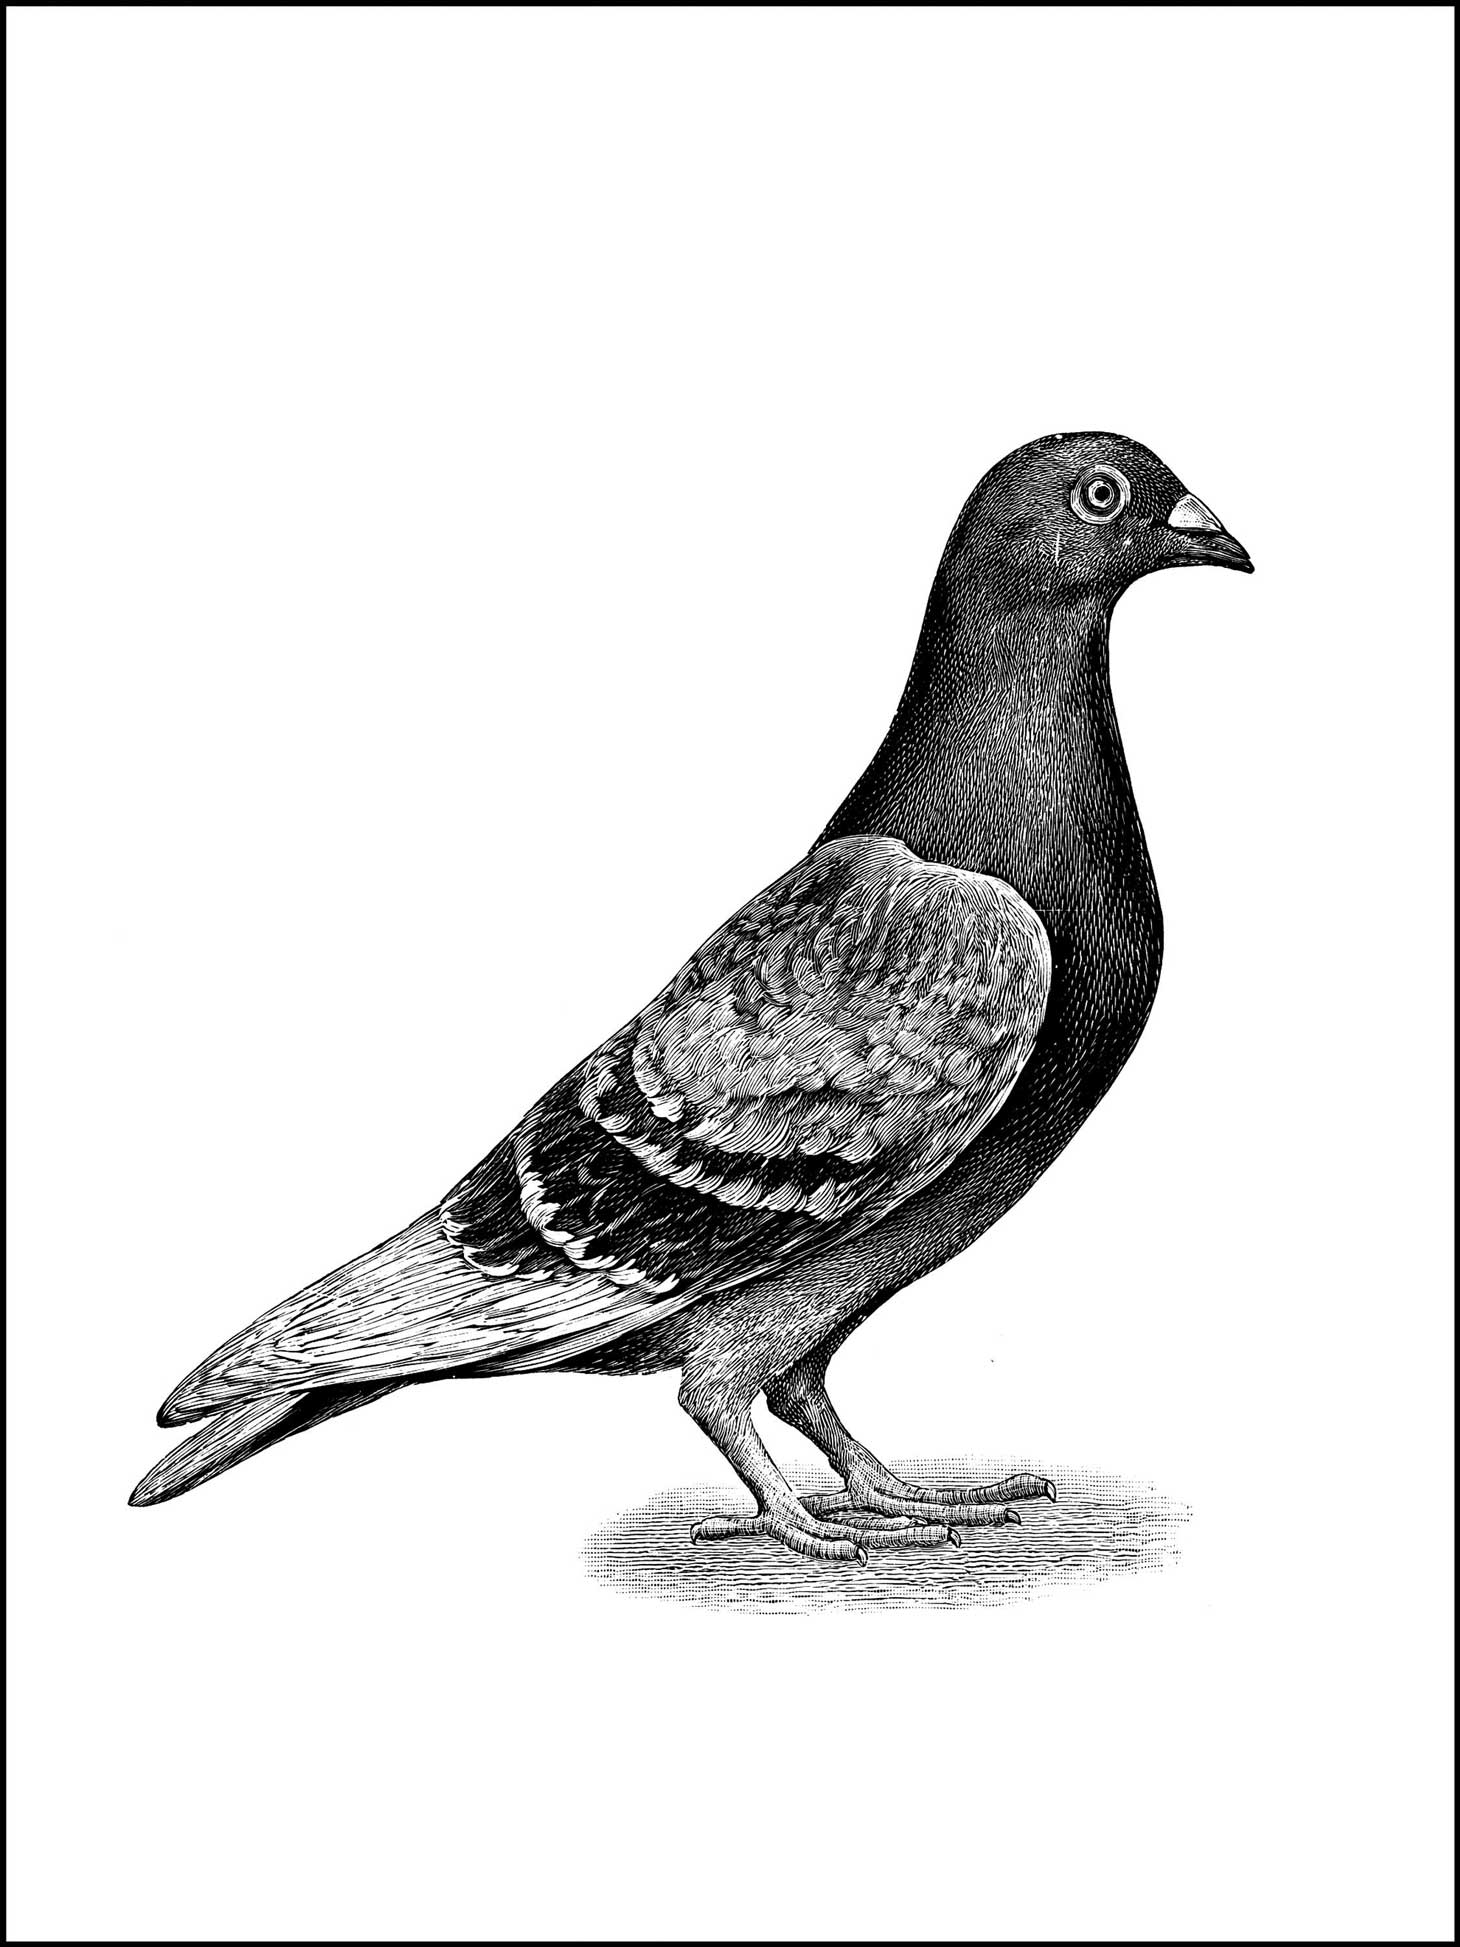 Coloring Pages   A Pigeon, Or Bird To Color